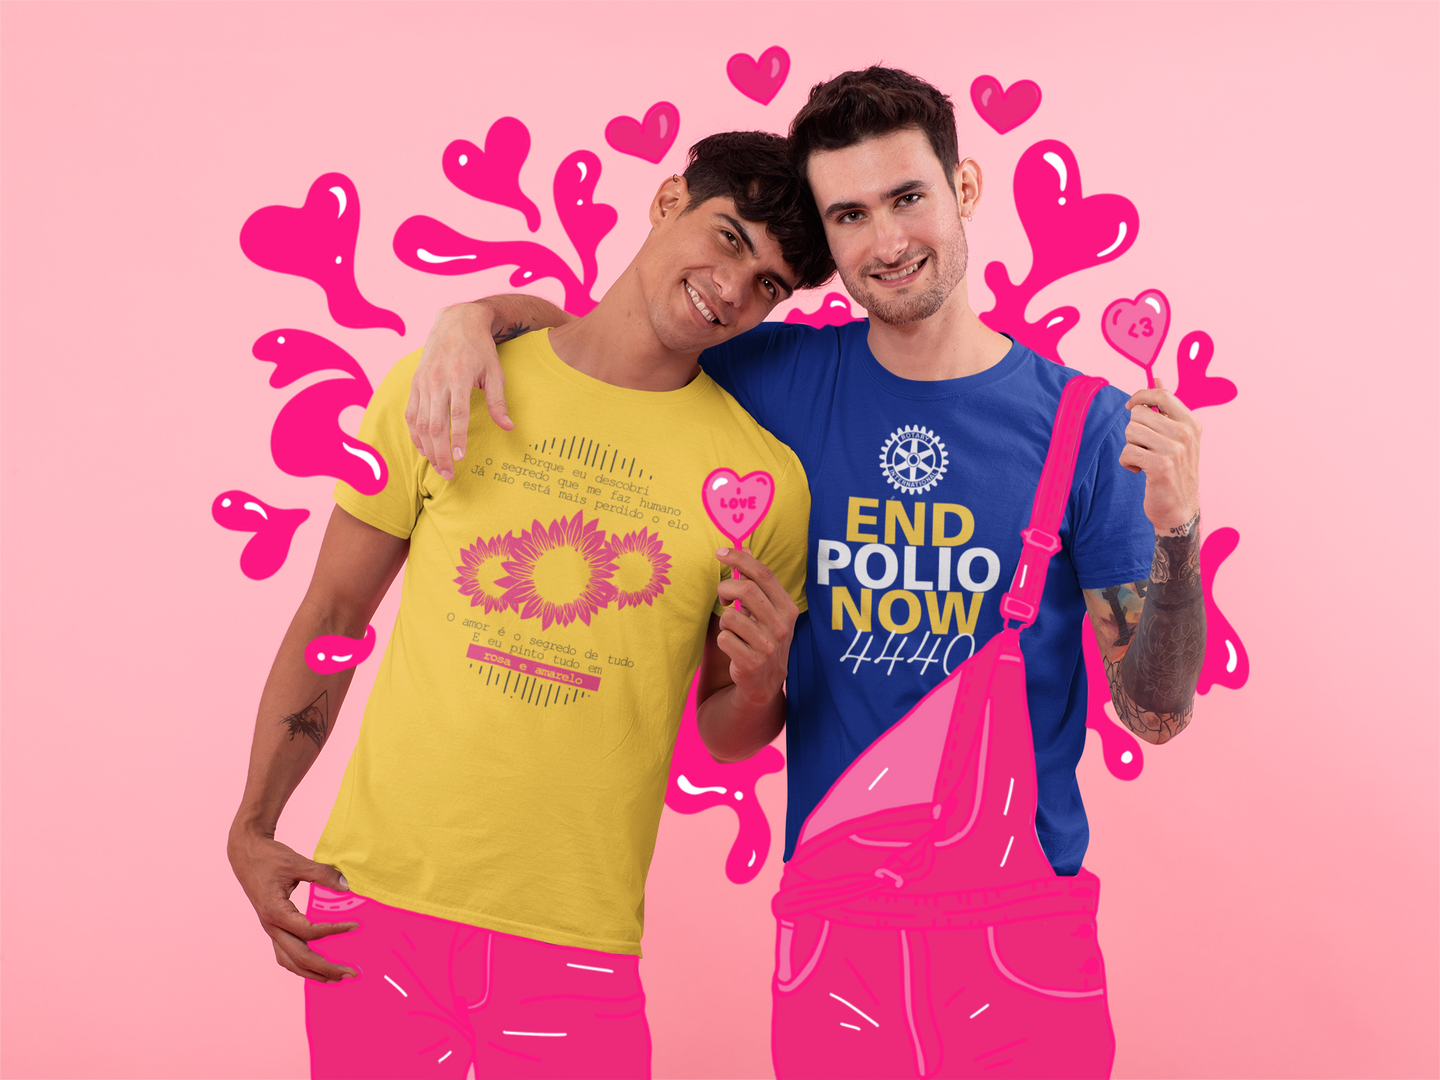 t-shirt-mockup-of-a-lgbt-couple-holding-